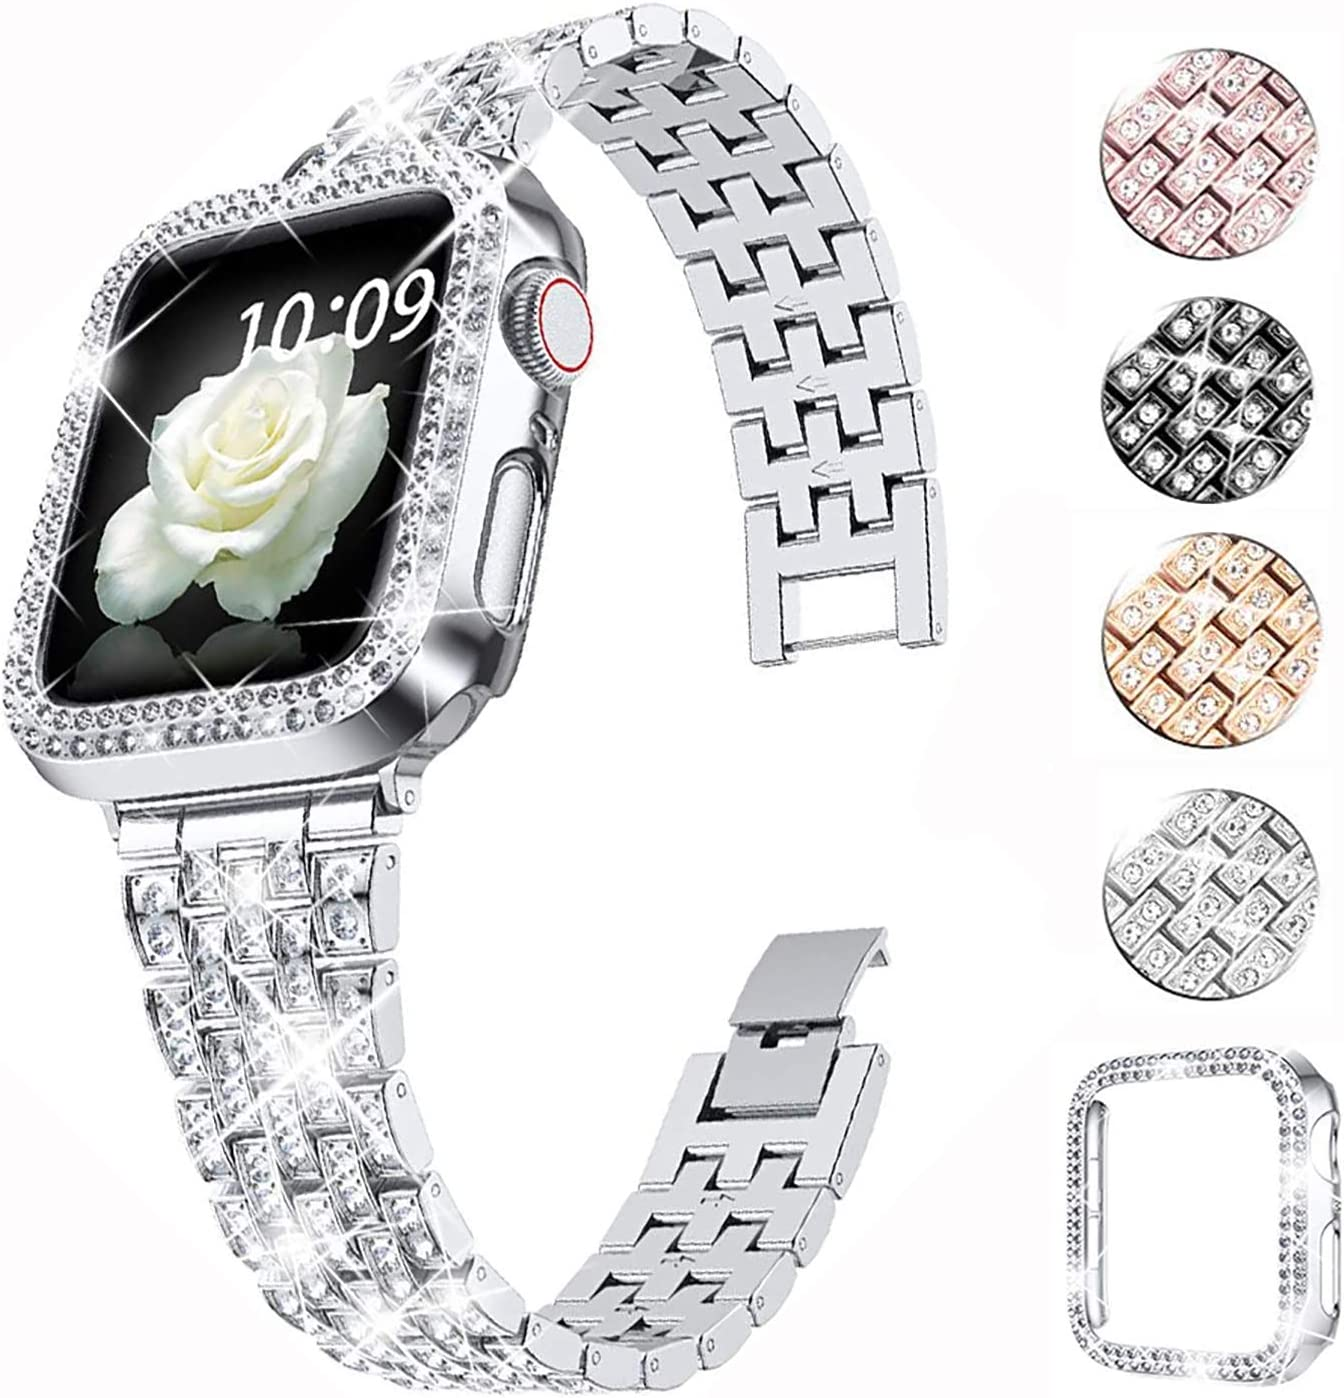 QVLANG Compatible Apple Watch Band 38mm 40mm 42mm 44mm Series 6/5/4/3/2/1/SE,Bling Series Band for Women + Diamond Rhinestone Case, Stainless Steel Metal Bracelet Strap for iWatch (Silver, 38mm)